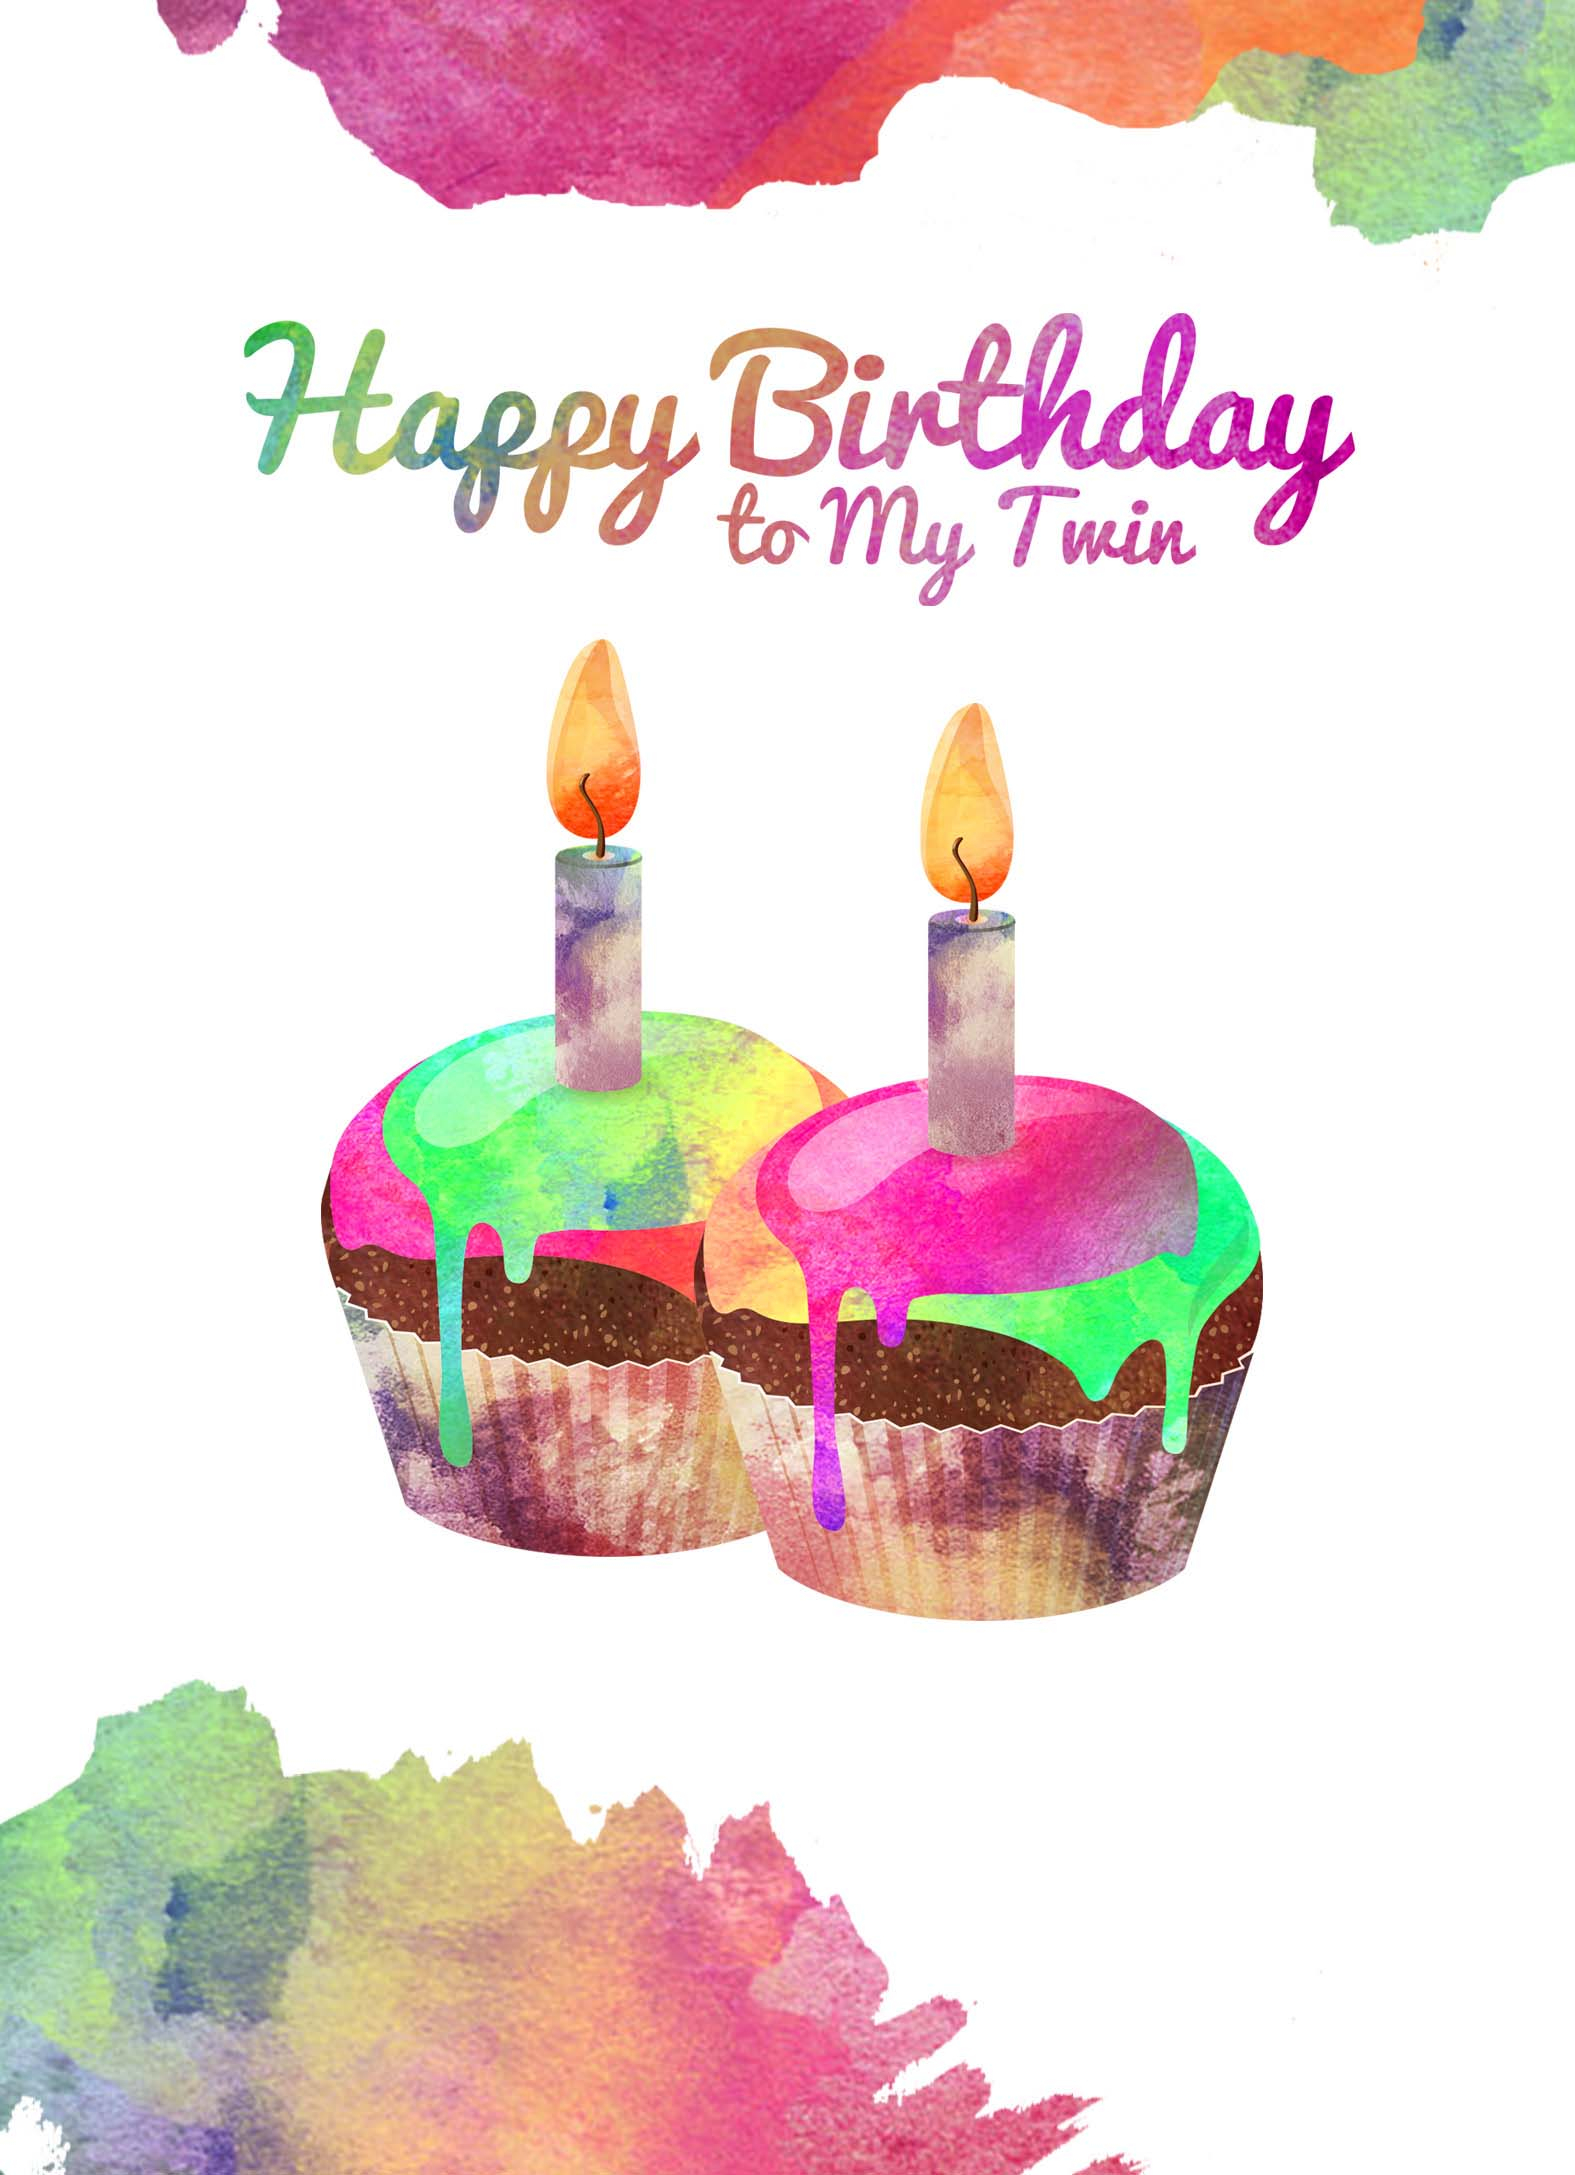 Happy Birthday Twins Cake To My Twin Heaven Sent Greeting Cards